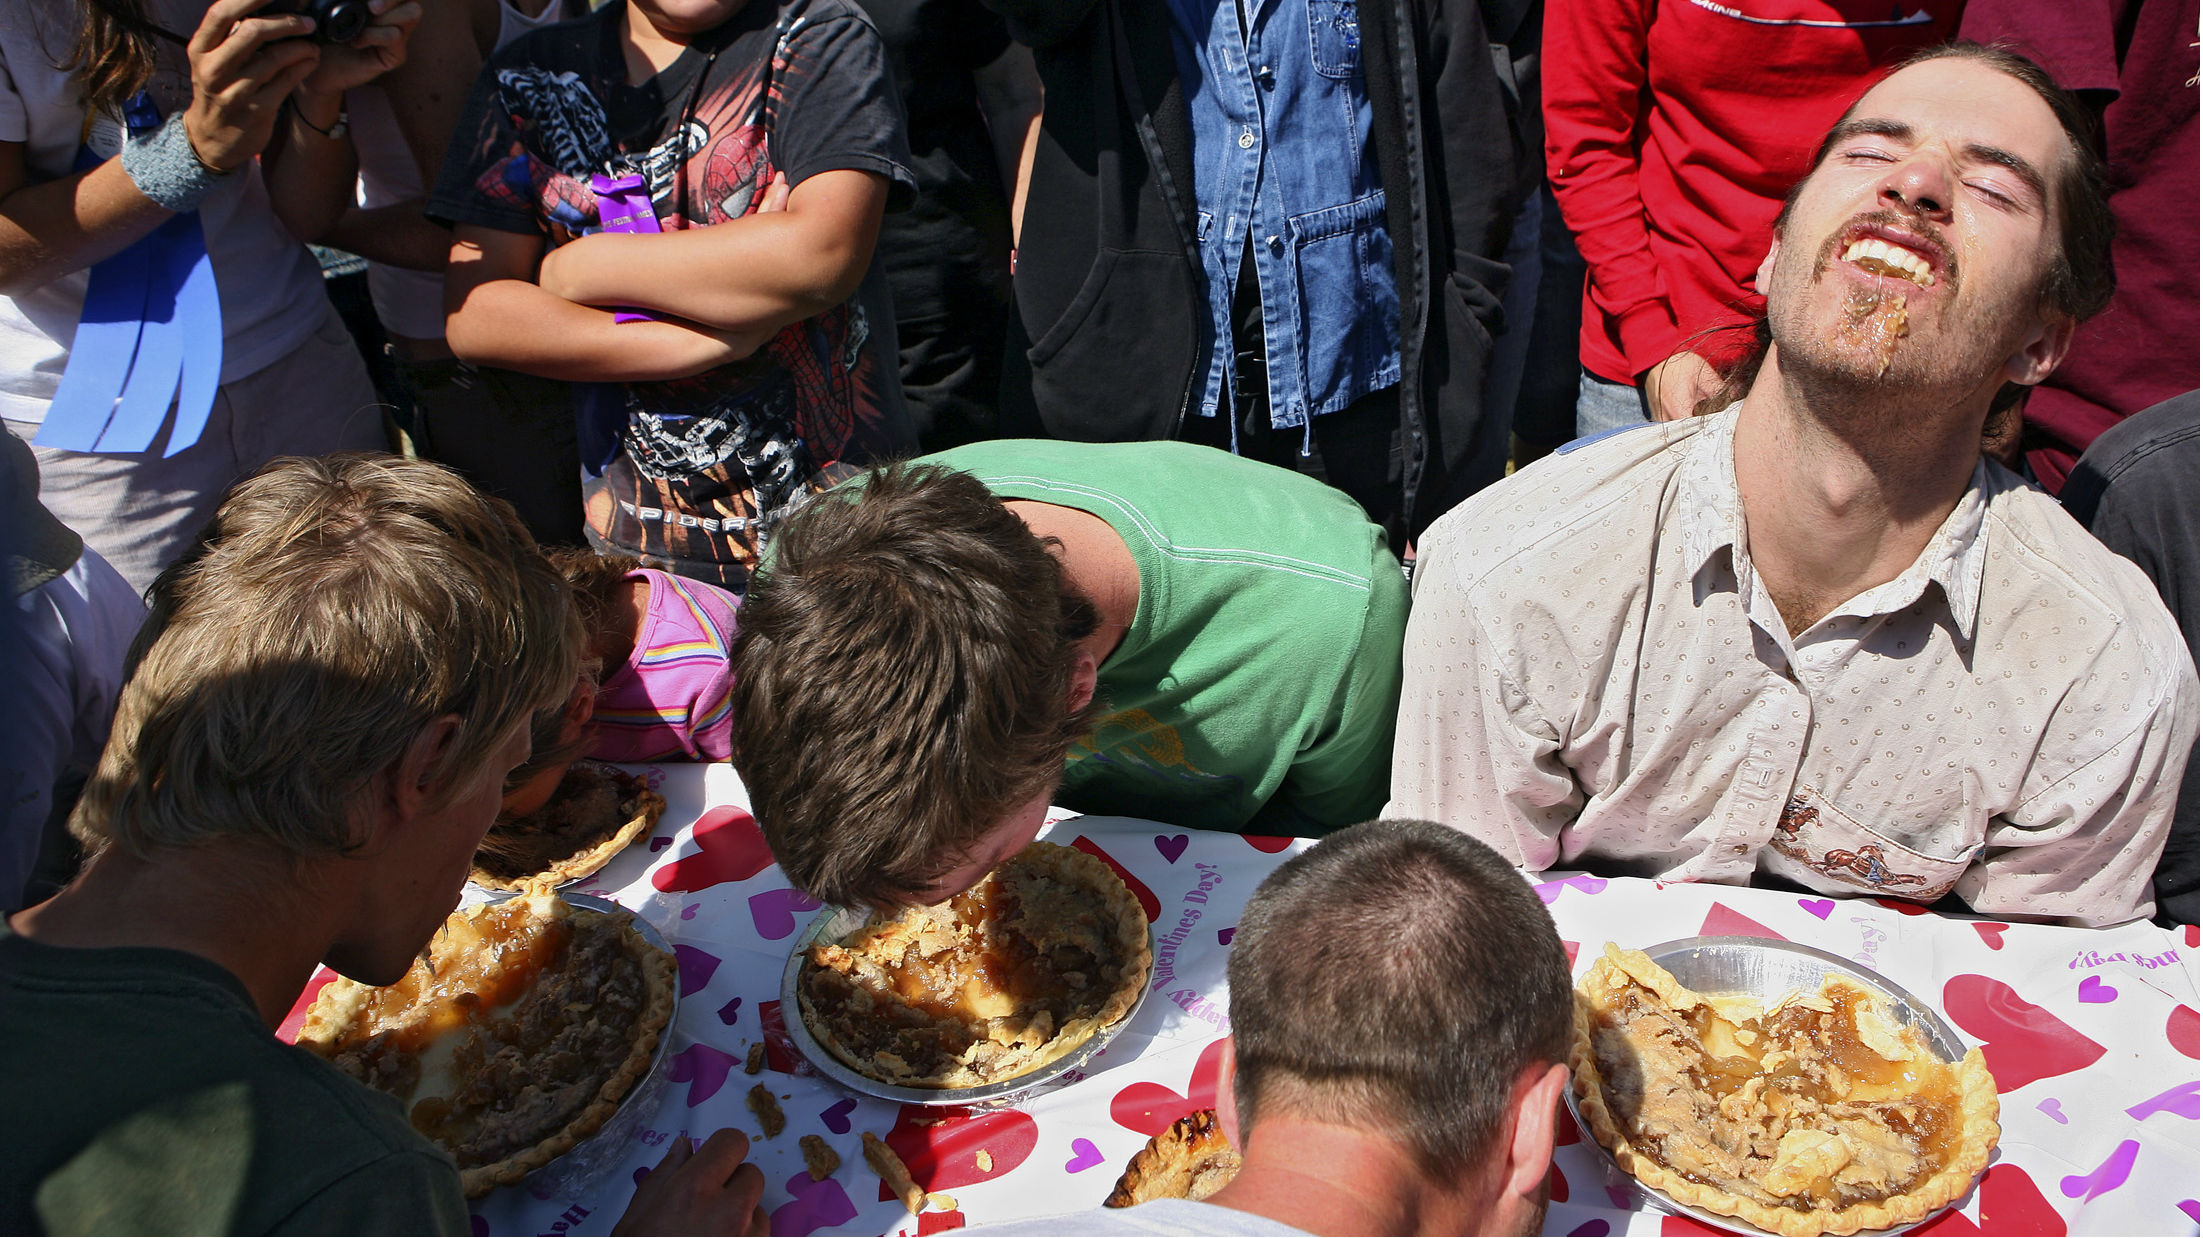 A scene from a pie eating contest in which contestants can only eat with their faces.